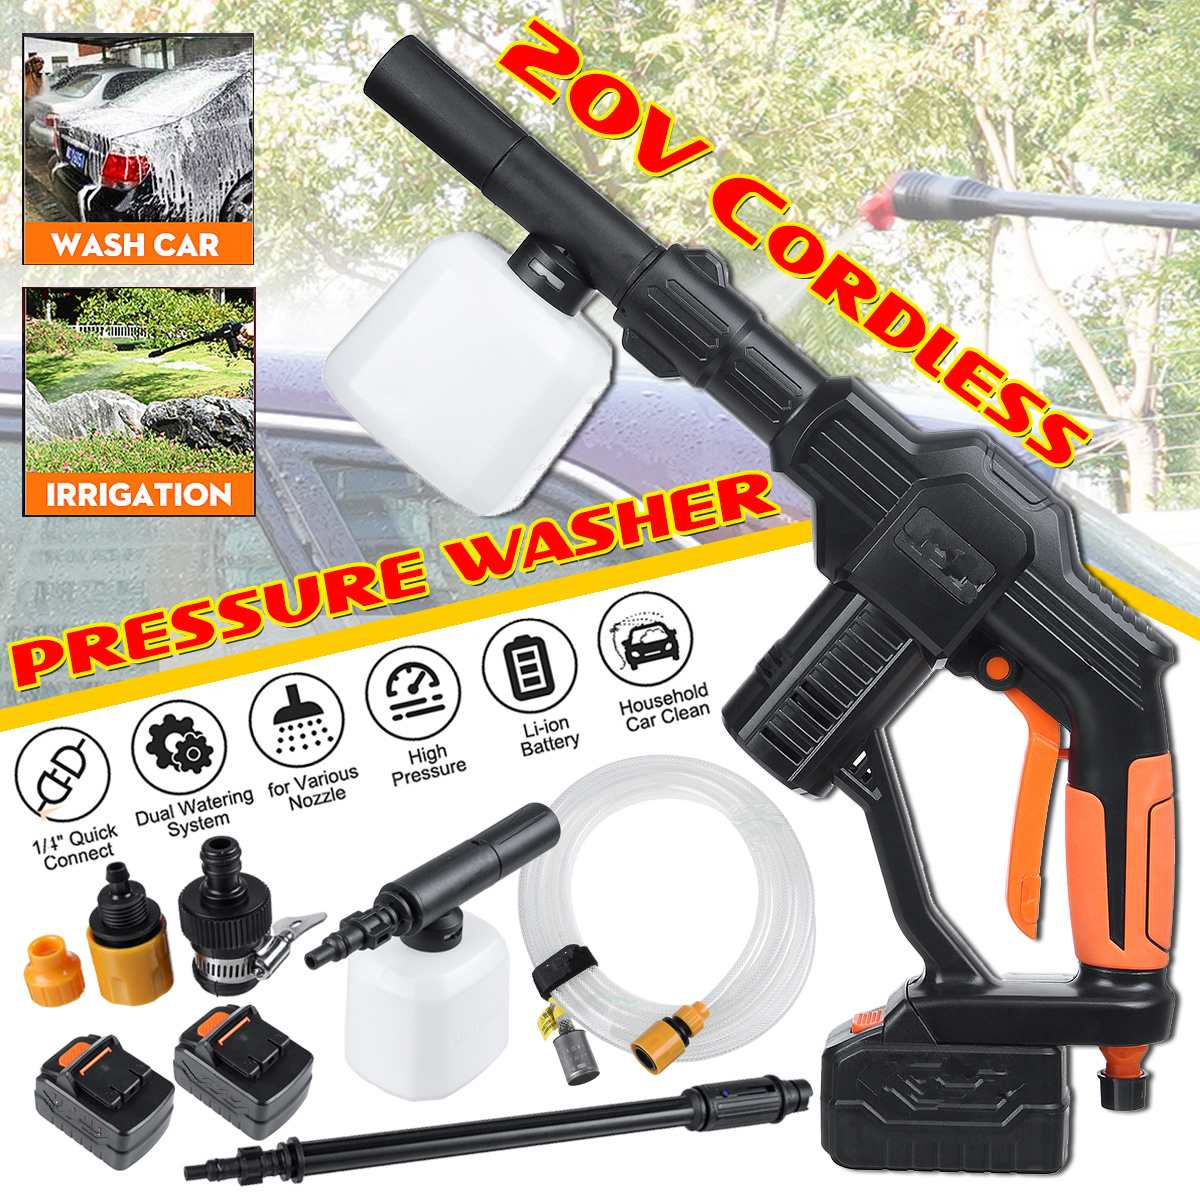 21V Wireless High Pressure Cleaner Universal 1/4